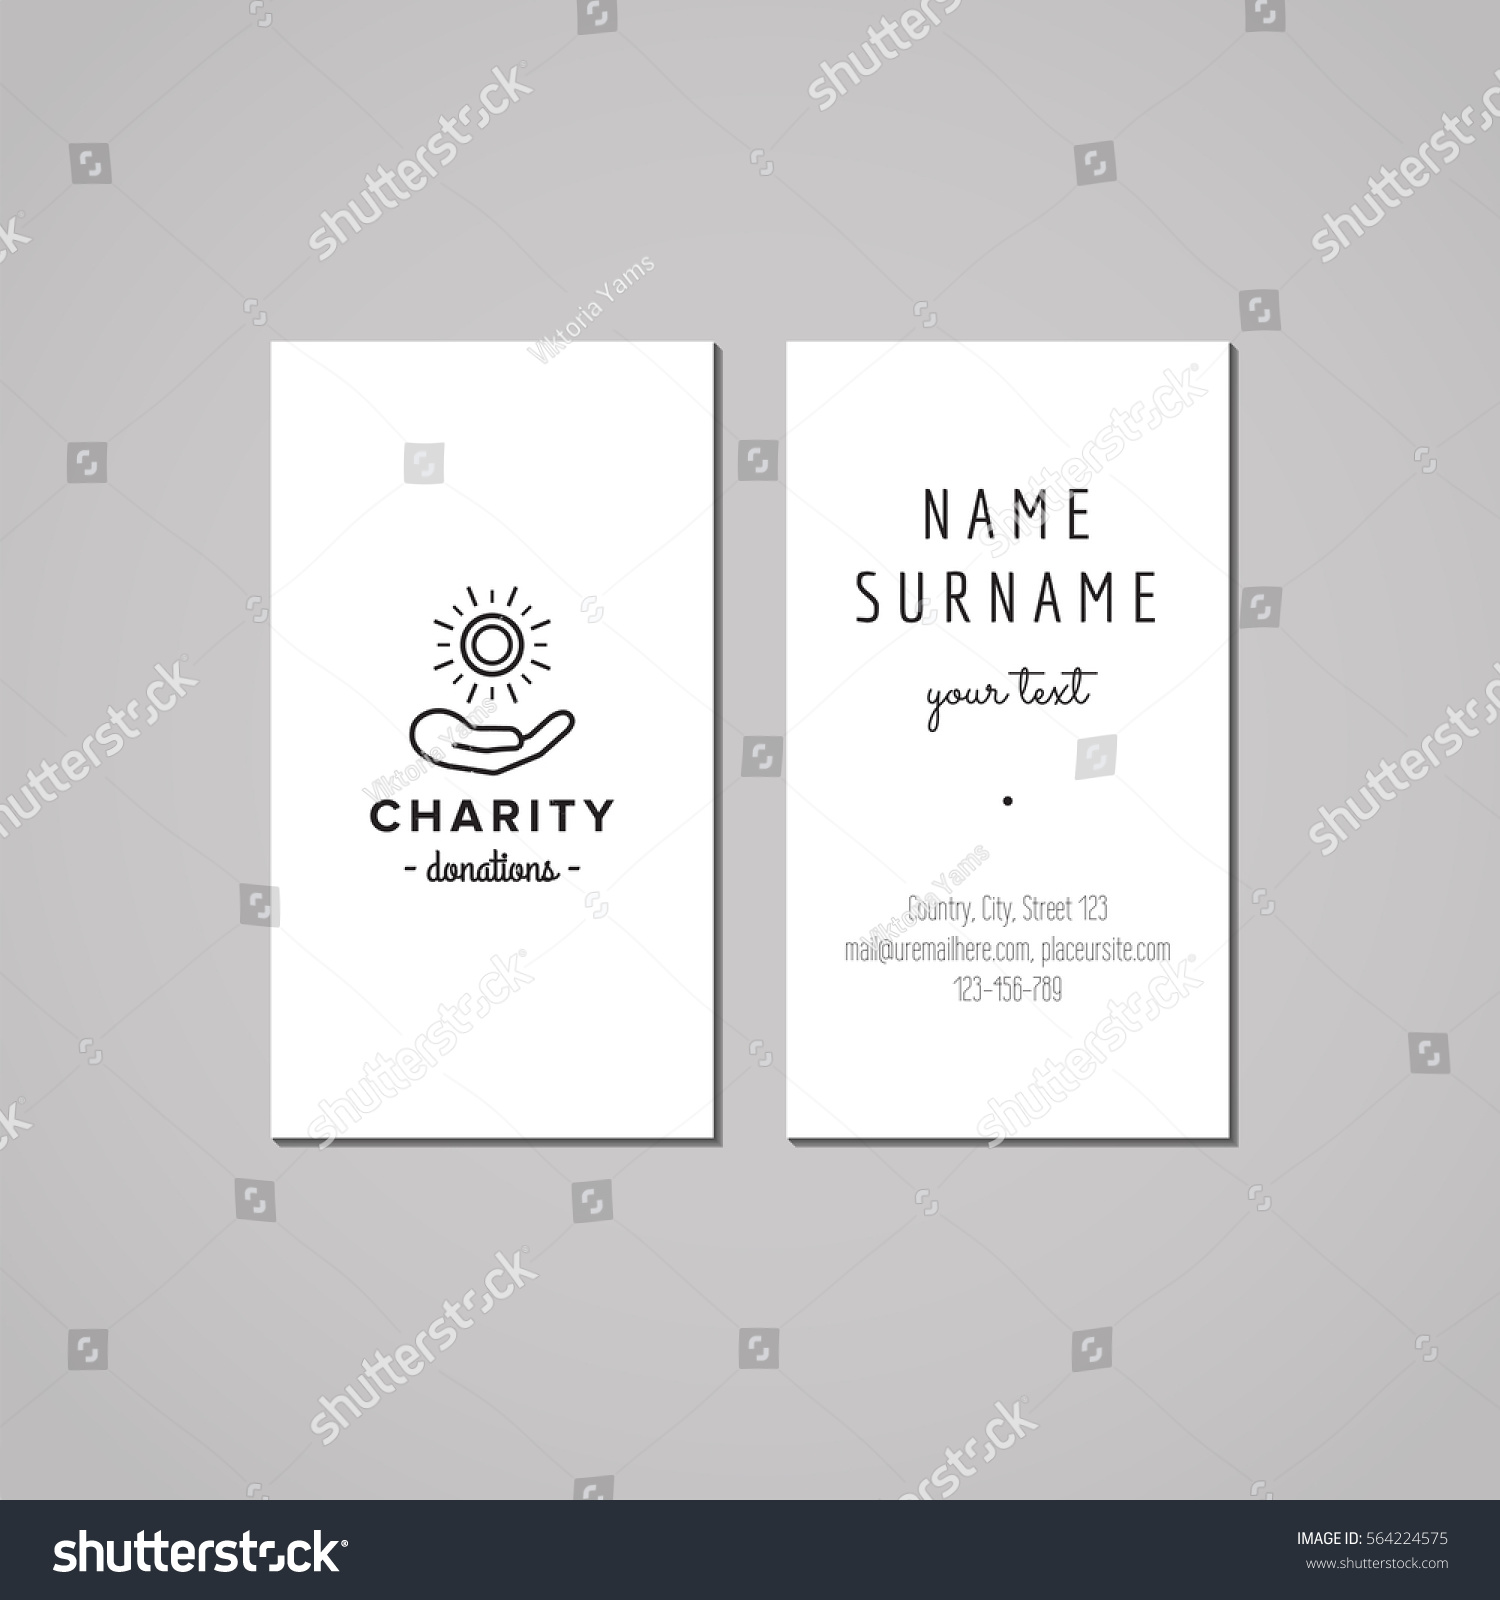 Donations Charity Business Card Design Concept Stock Vector HD ...